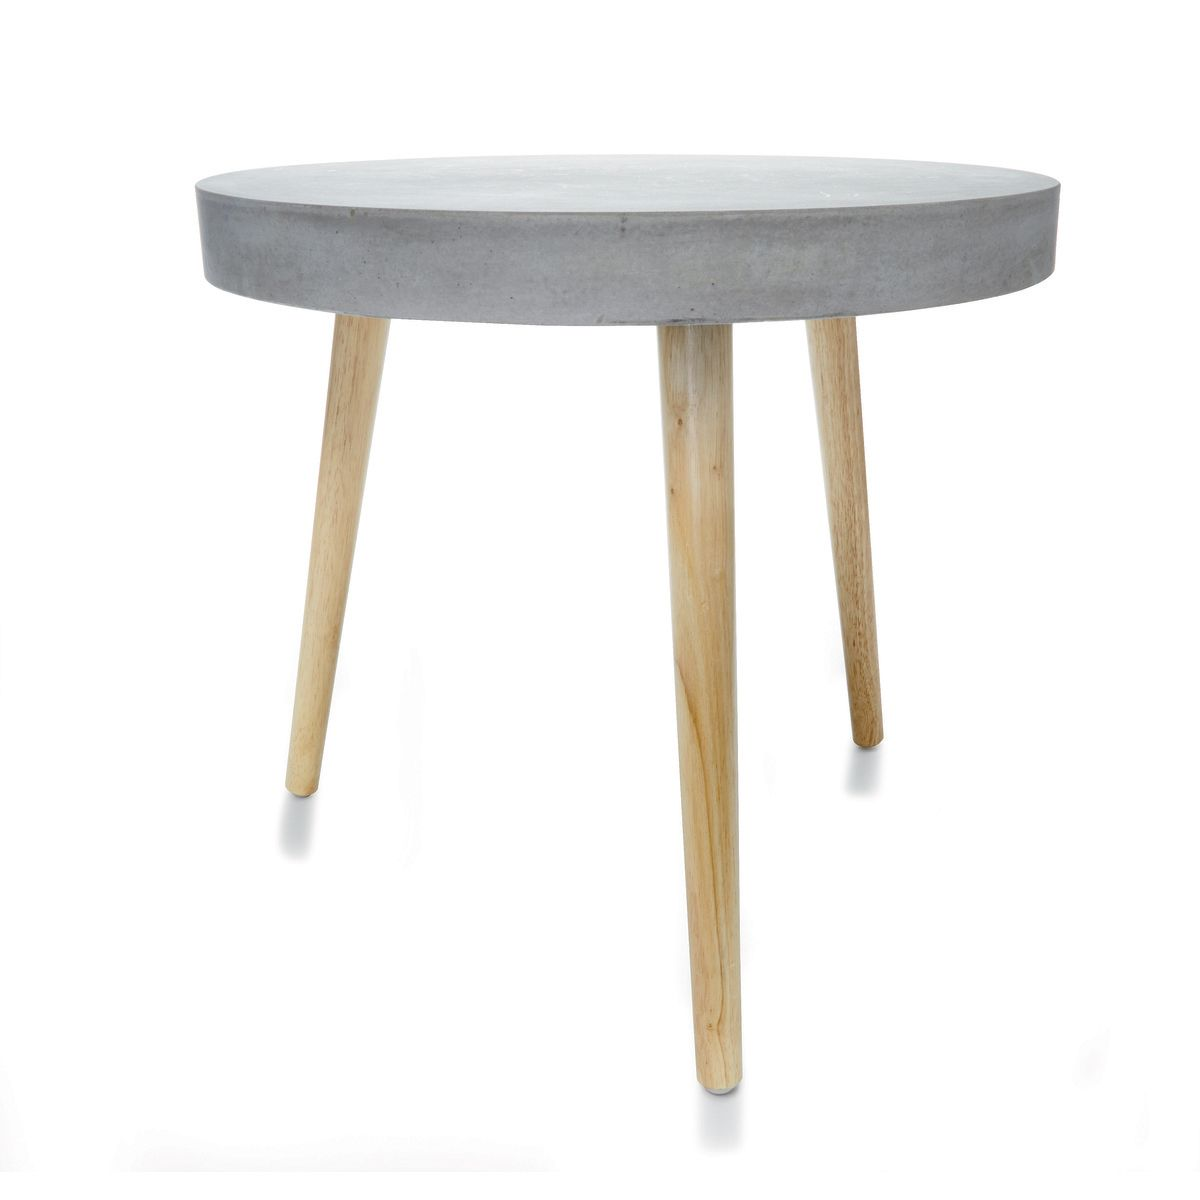 Concrete Side Table Kmart Kmart coffee table, Side